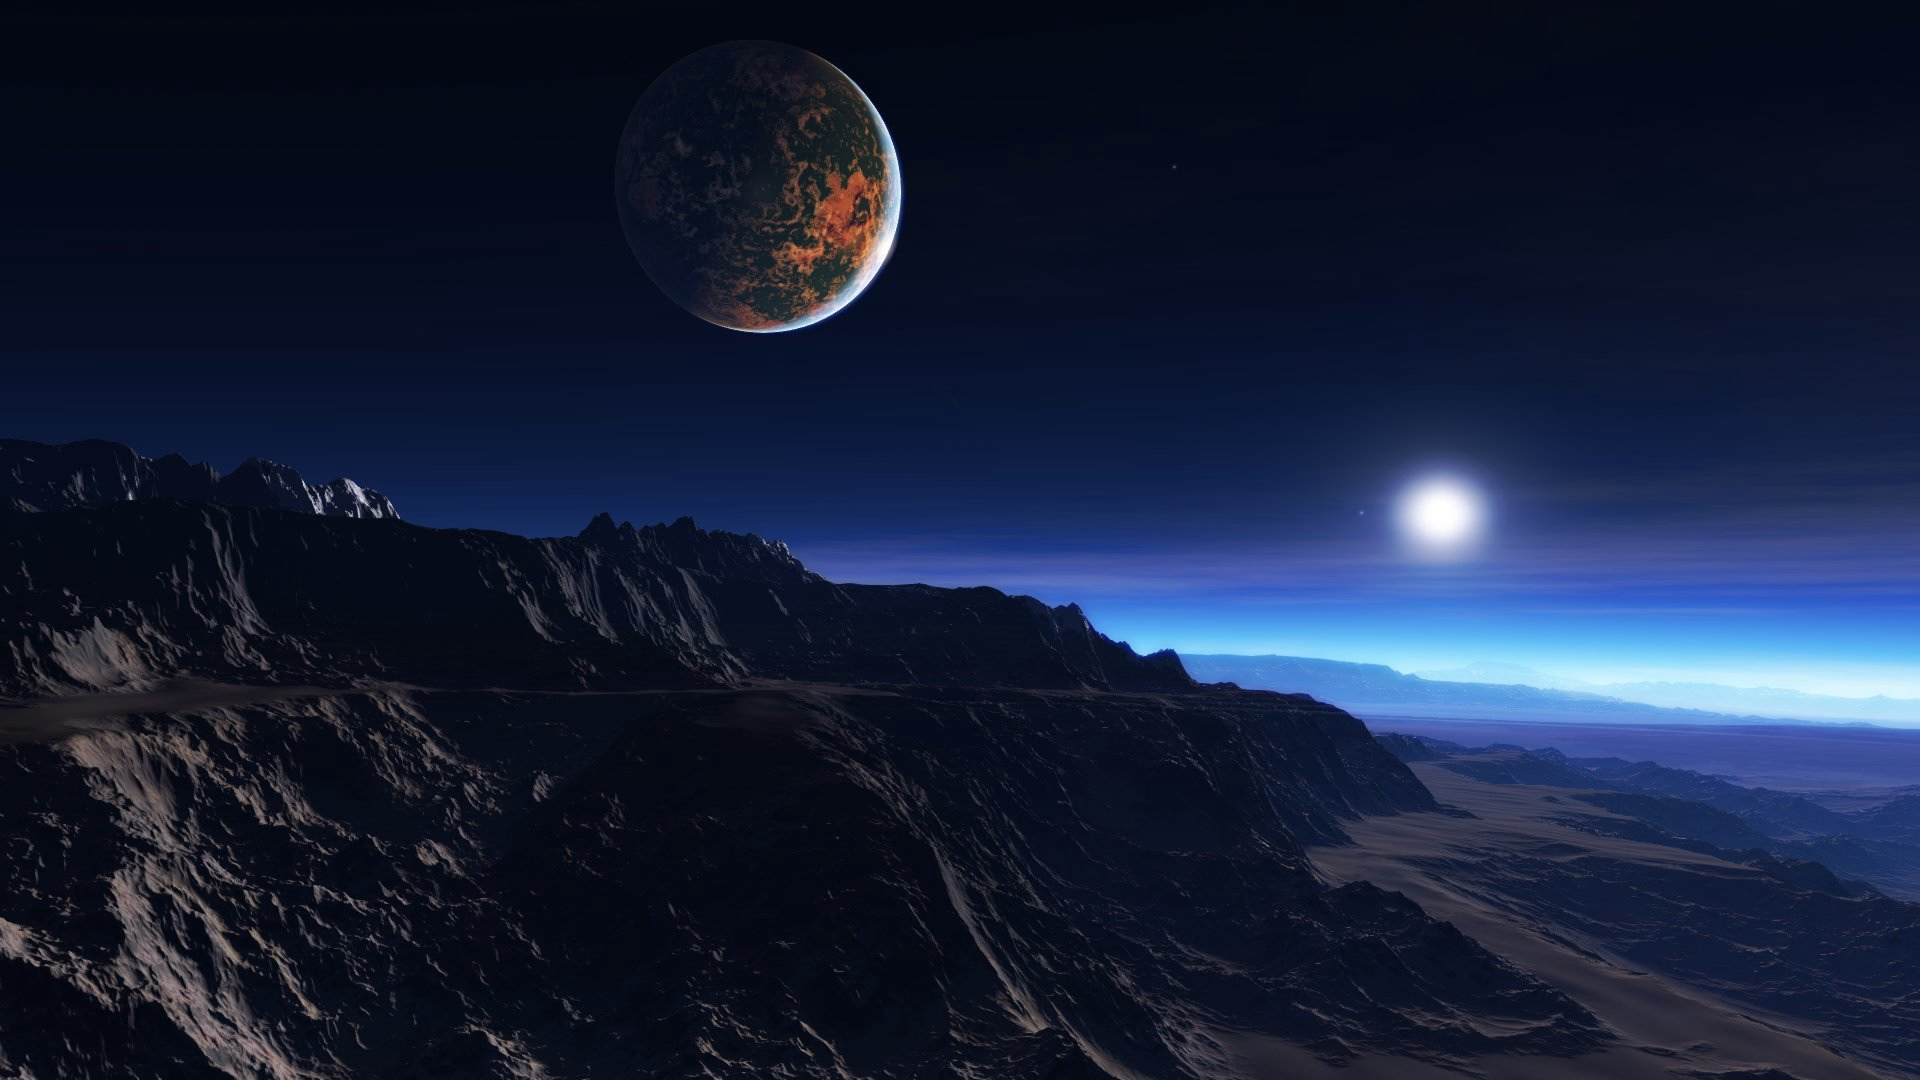 exoplanet atmosphere clouds stars moon mist mountains rocks